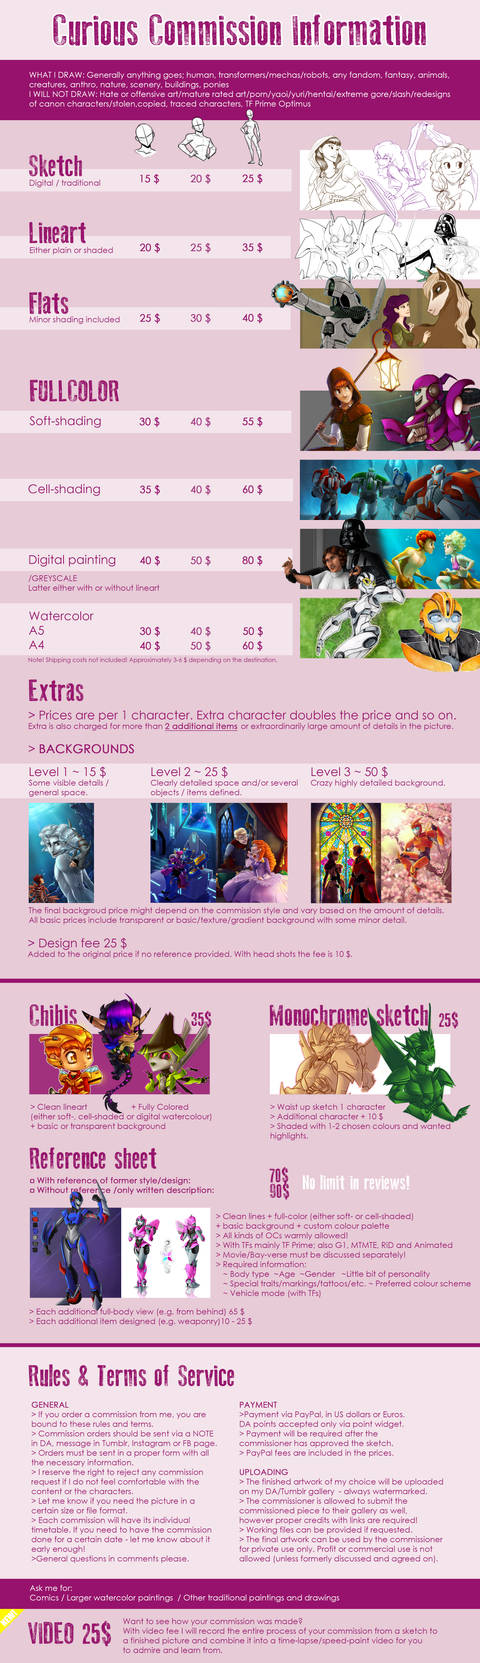 Curious Commission Information